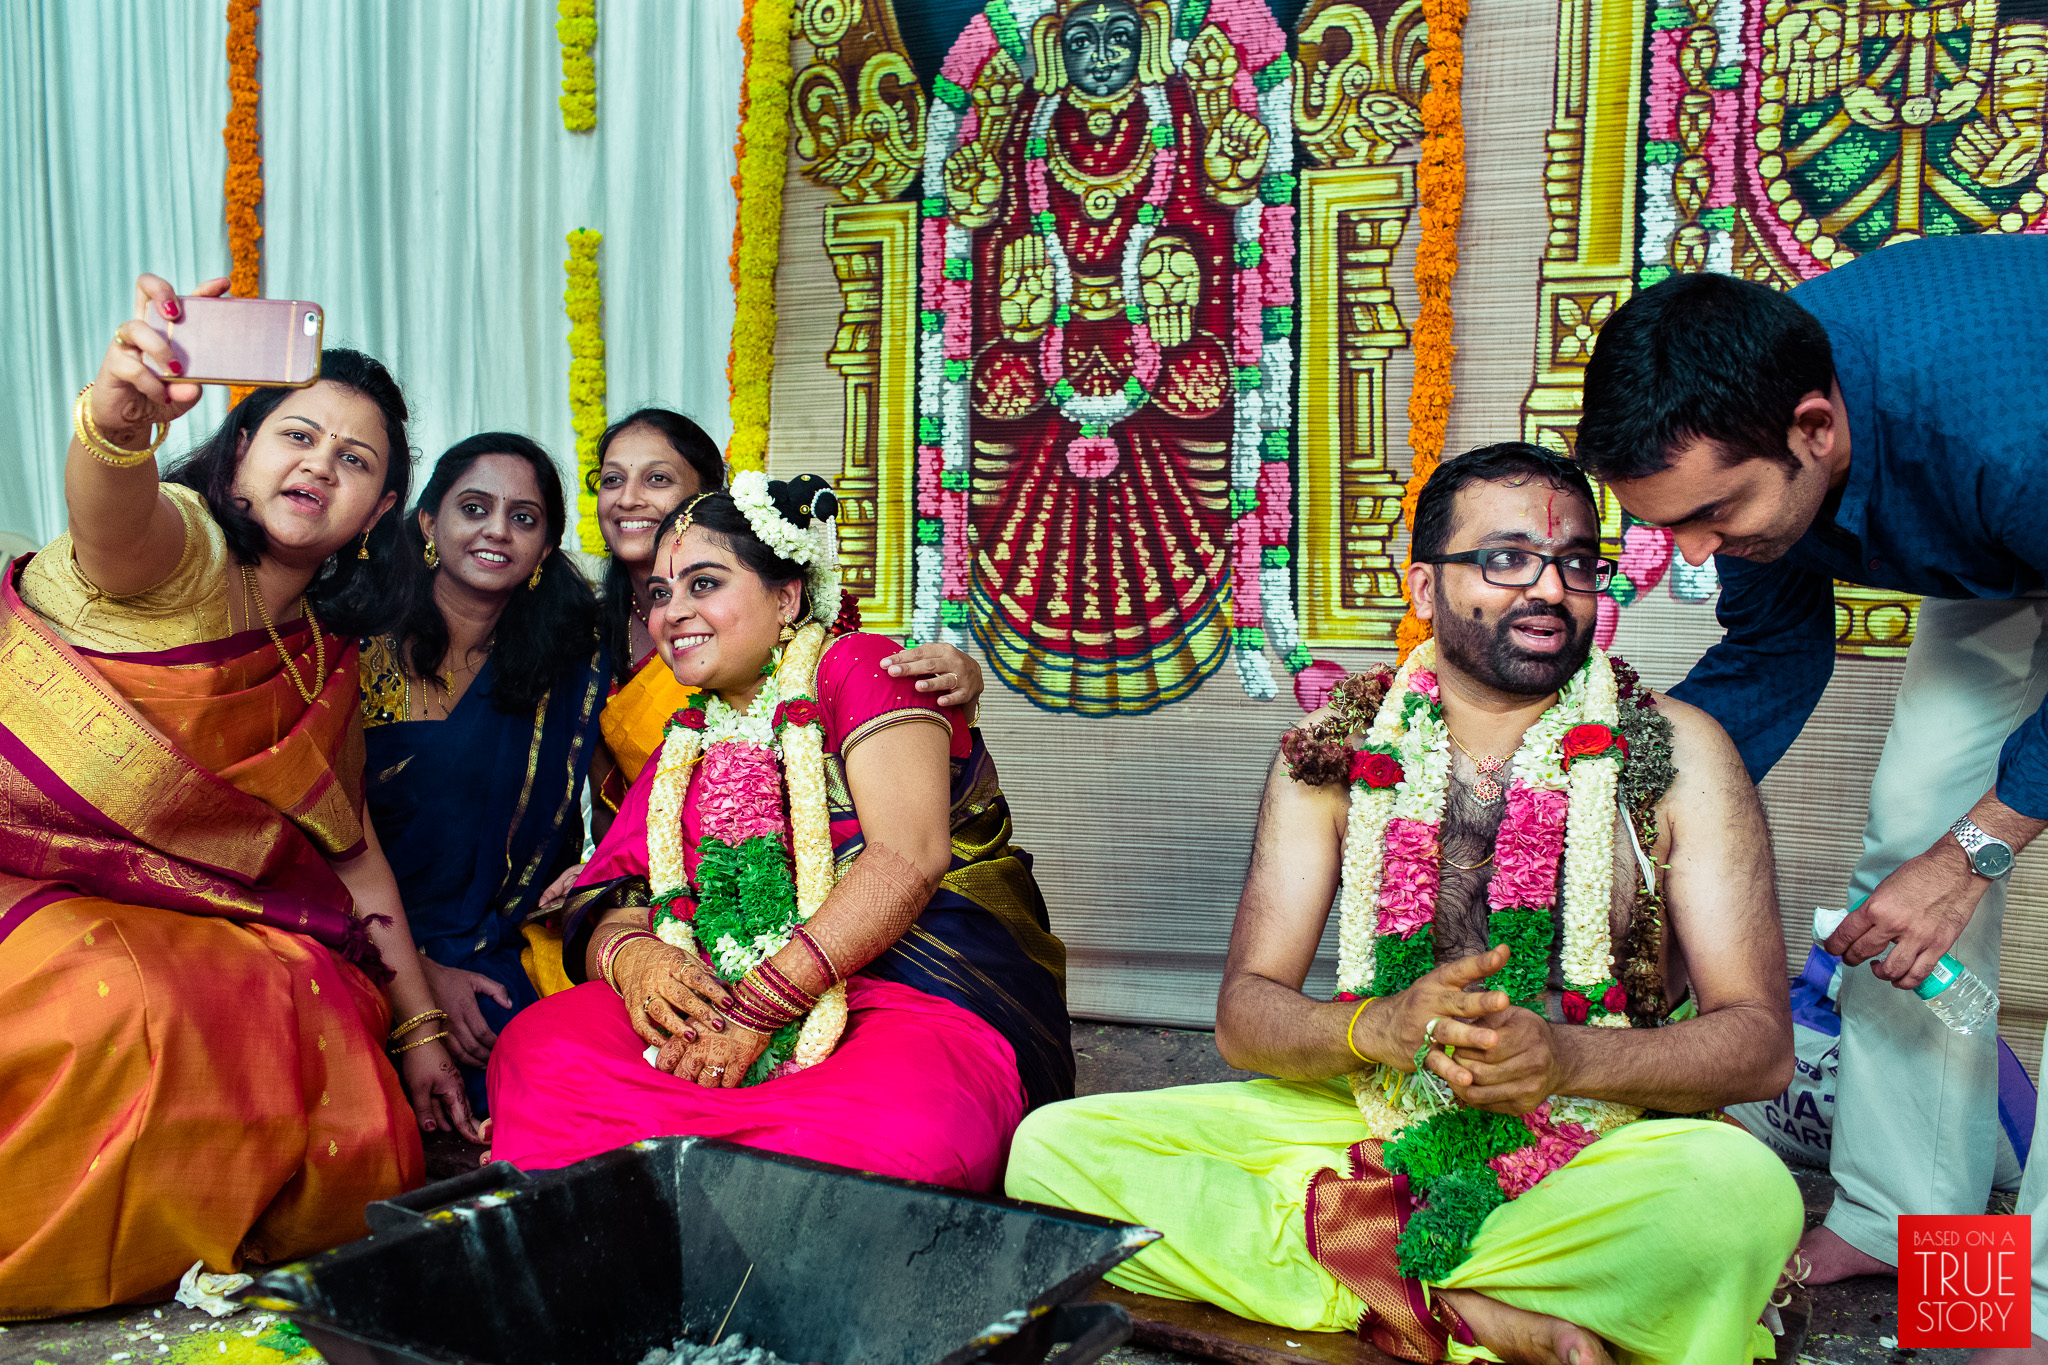 tambrahm-candid-wedding-photographer-bangalore-0055.jpg